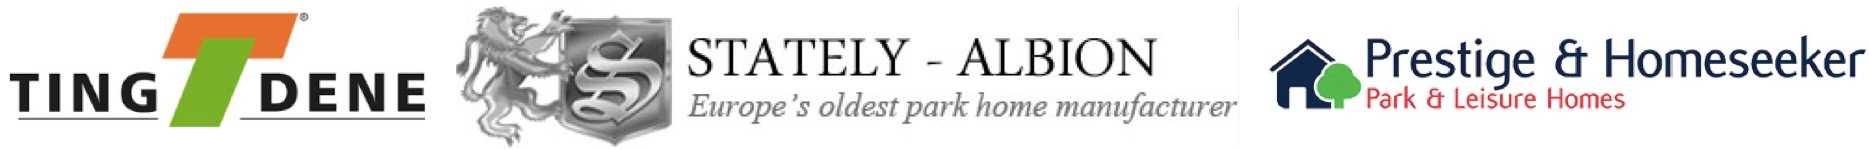 Logos of various park home manufacturers West Park Estates works with including Prestige & Homeseeker and Stately - Albion